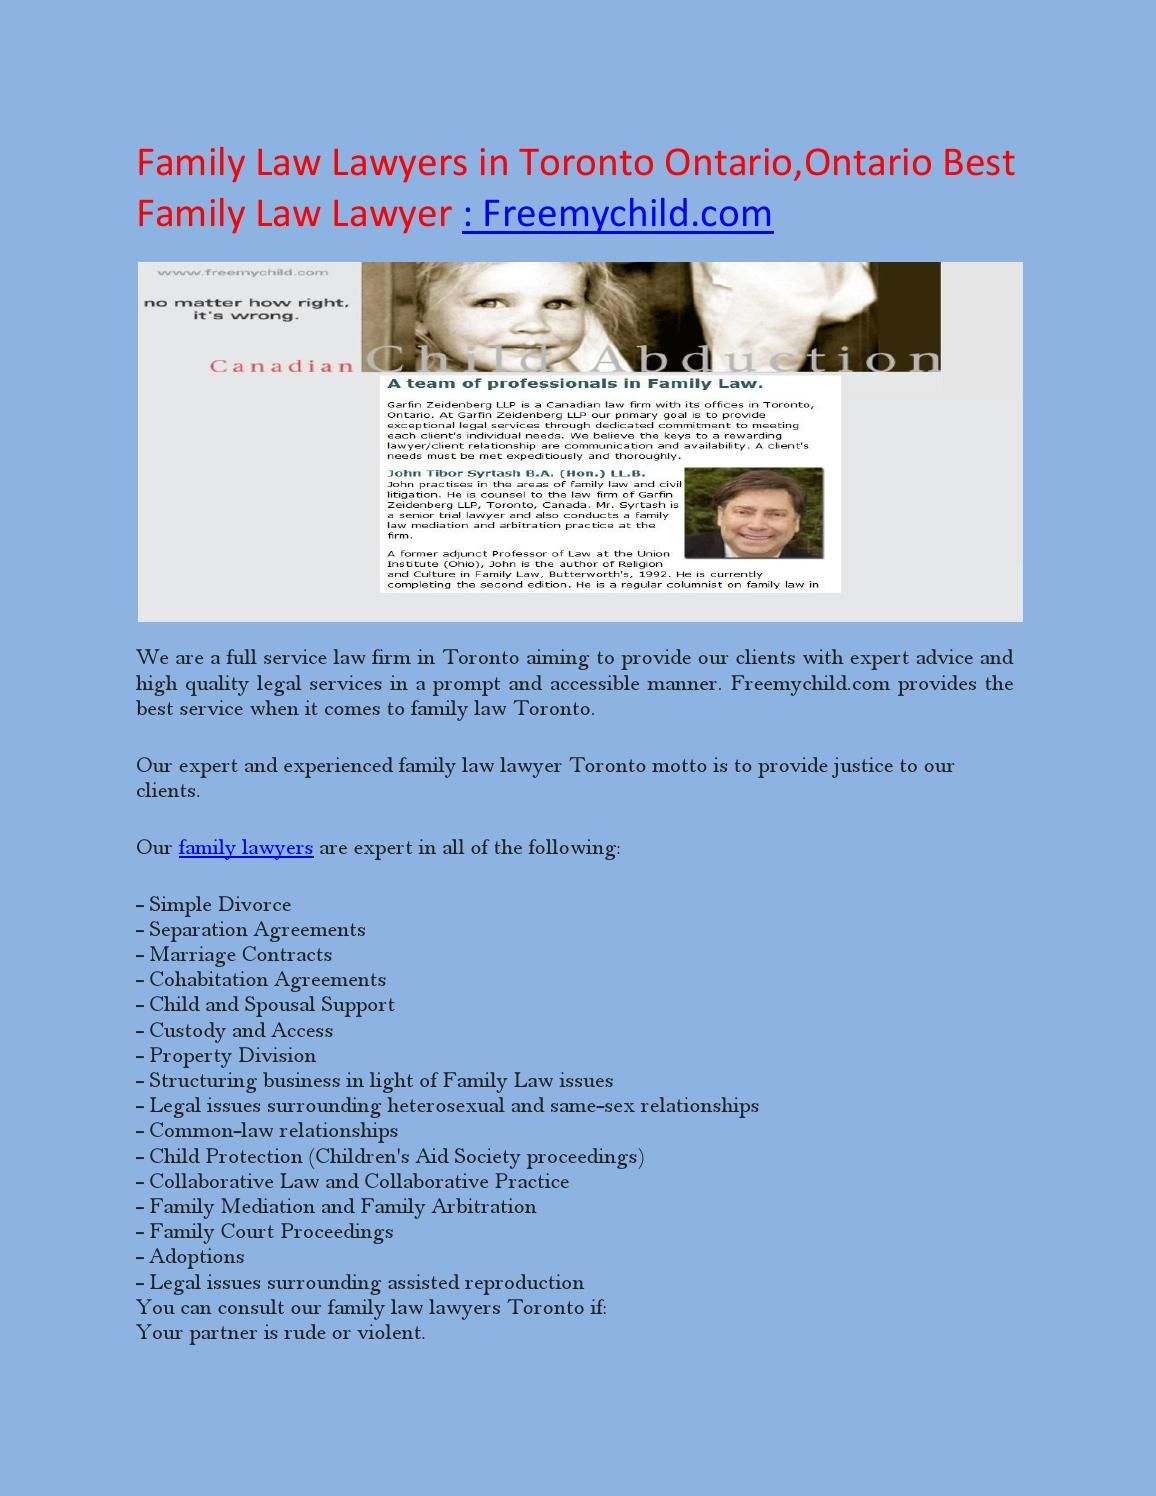 Family Law Lawyers in Toronto Ontario,Ontario Best Family